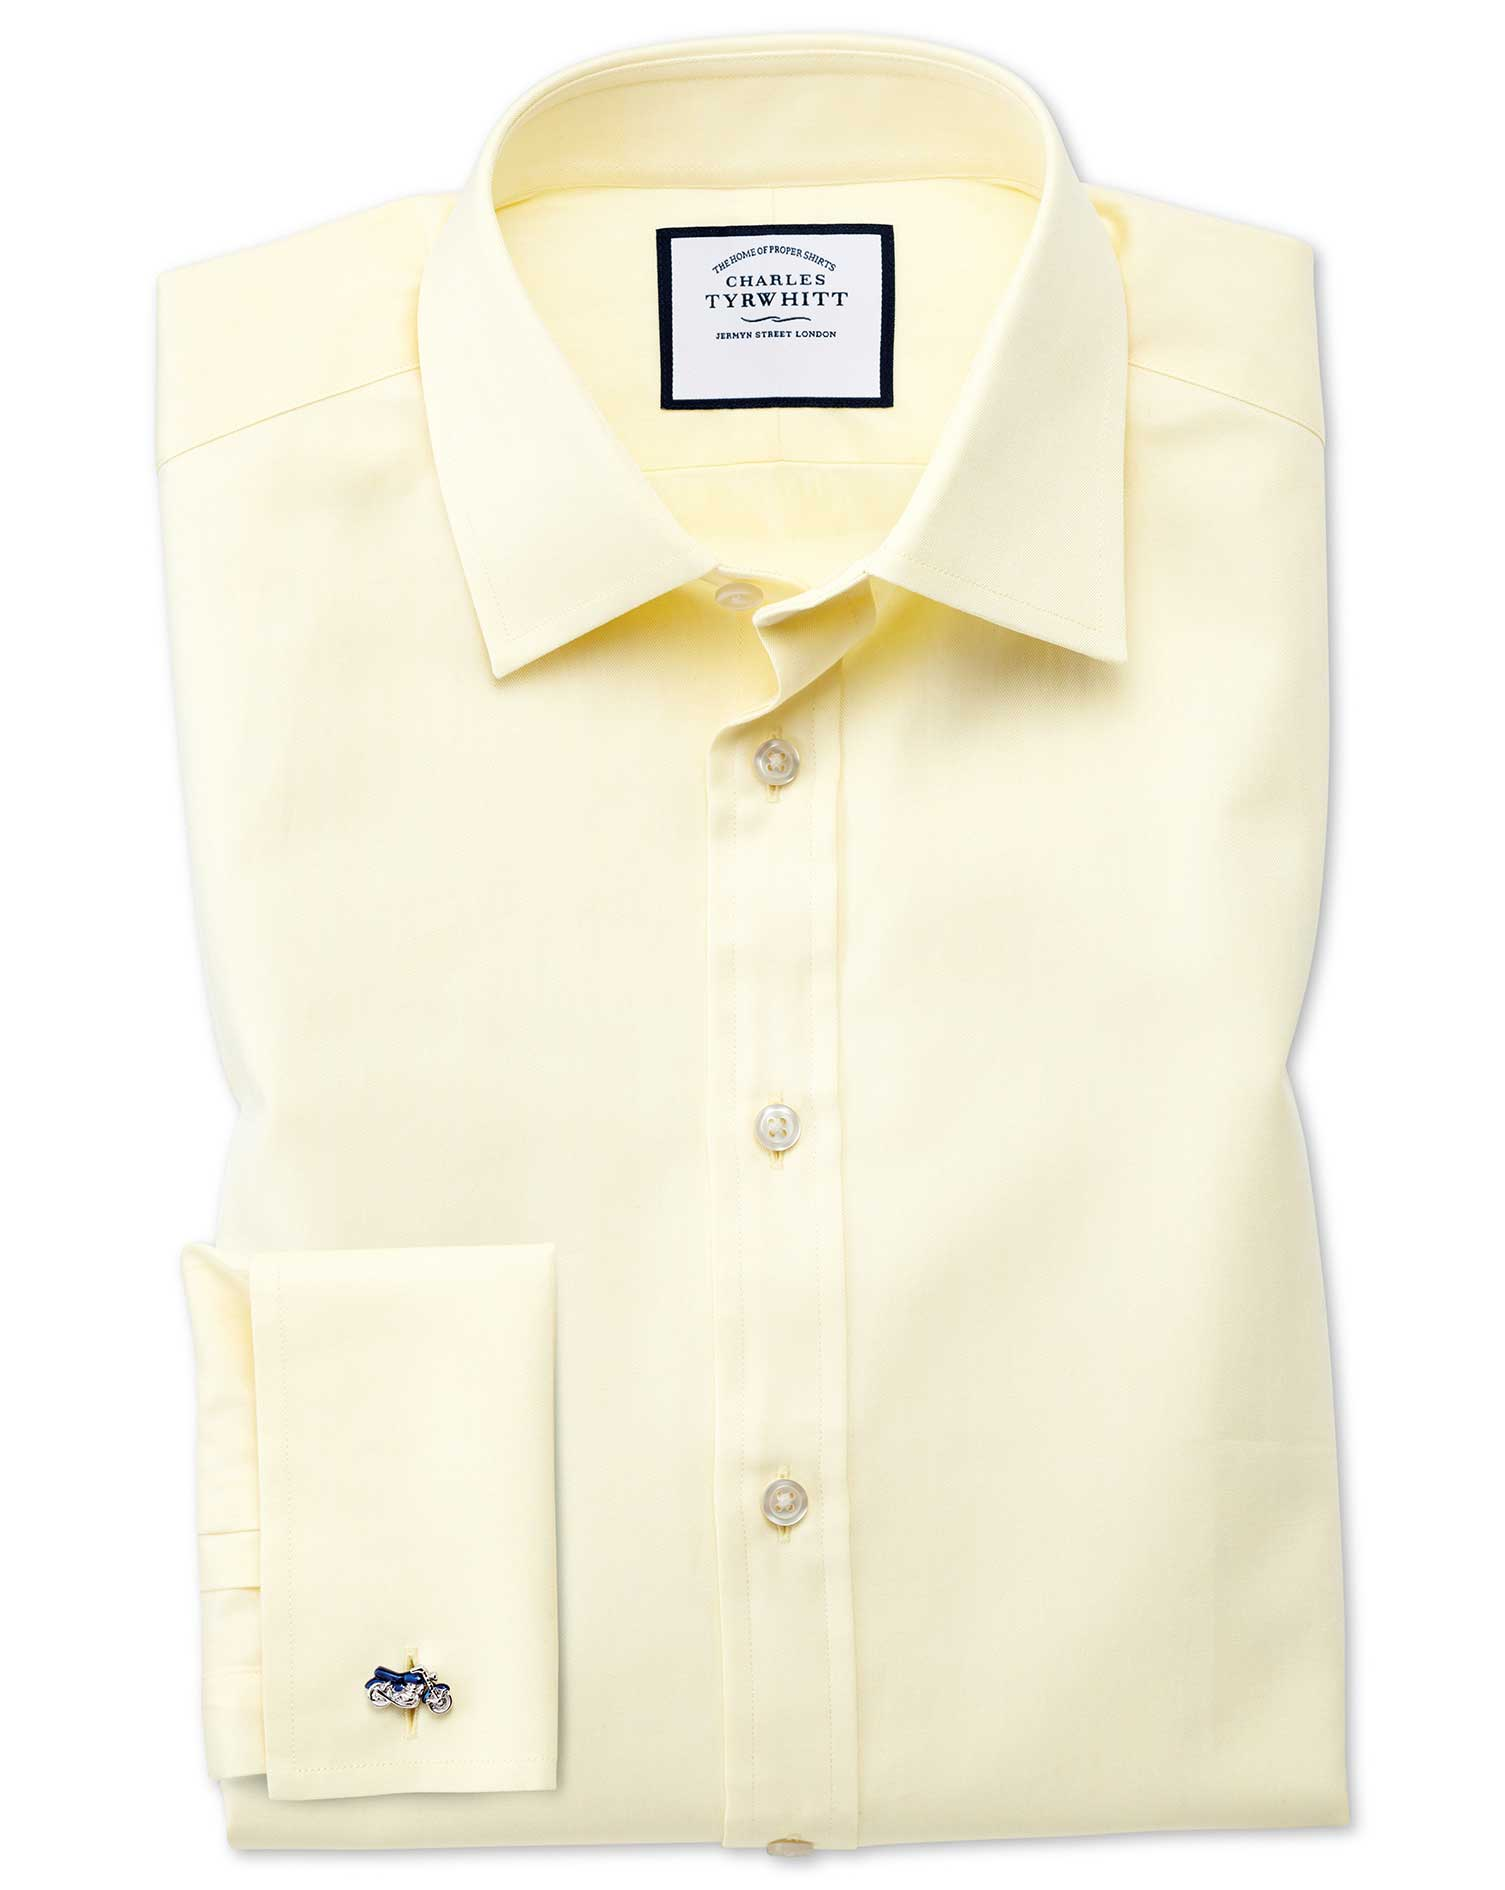 Slim Fit Fine Herringbone Yellow Cotton Formal Shirt Single Cuff Size 15.5/33 by Charles Tyrwhitt from Charles Tyrwhitt